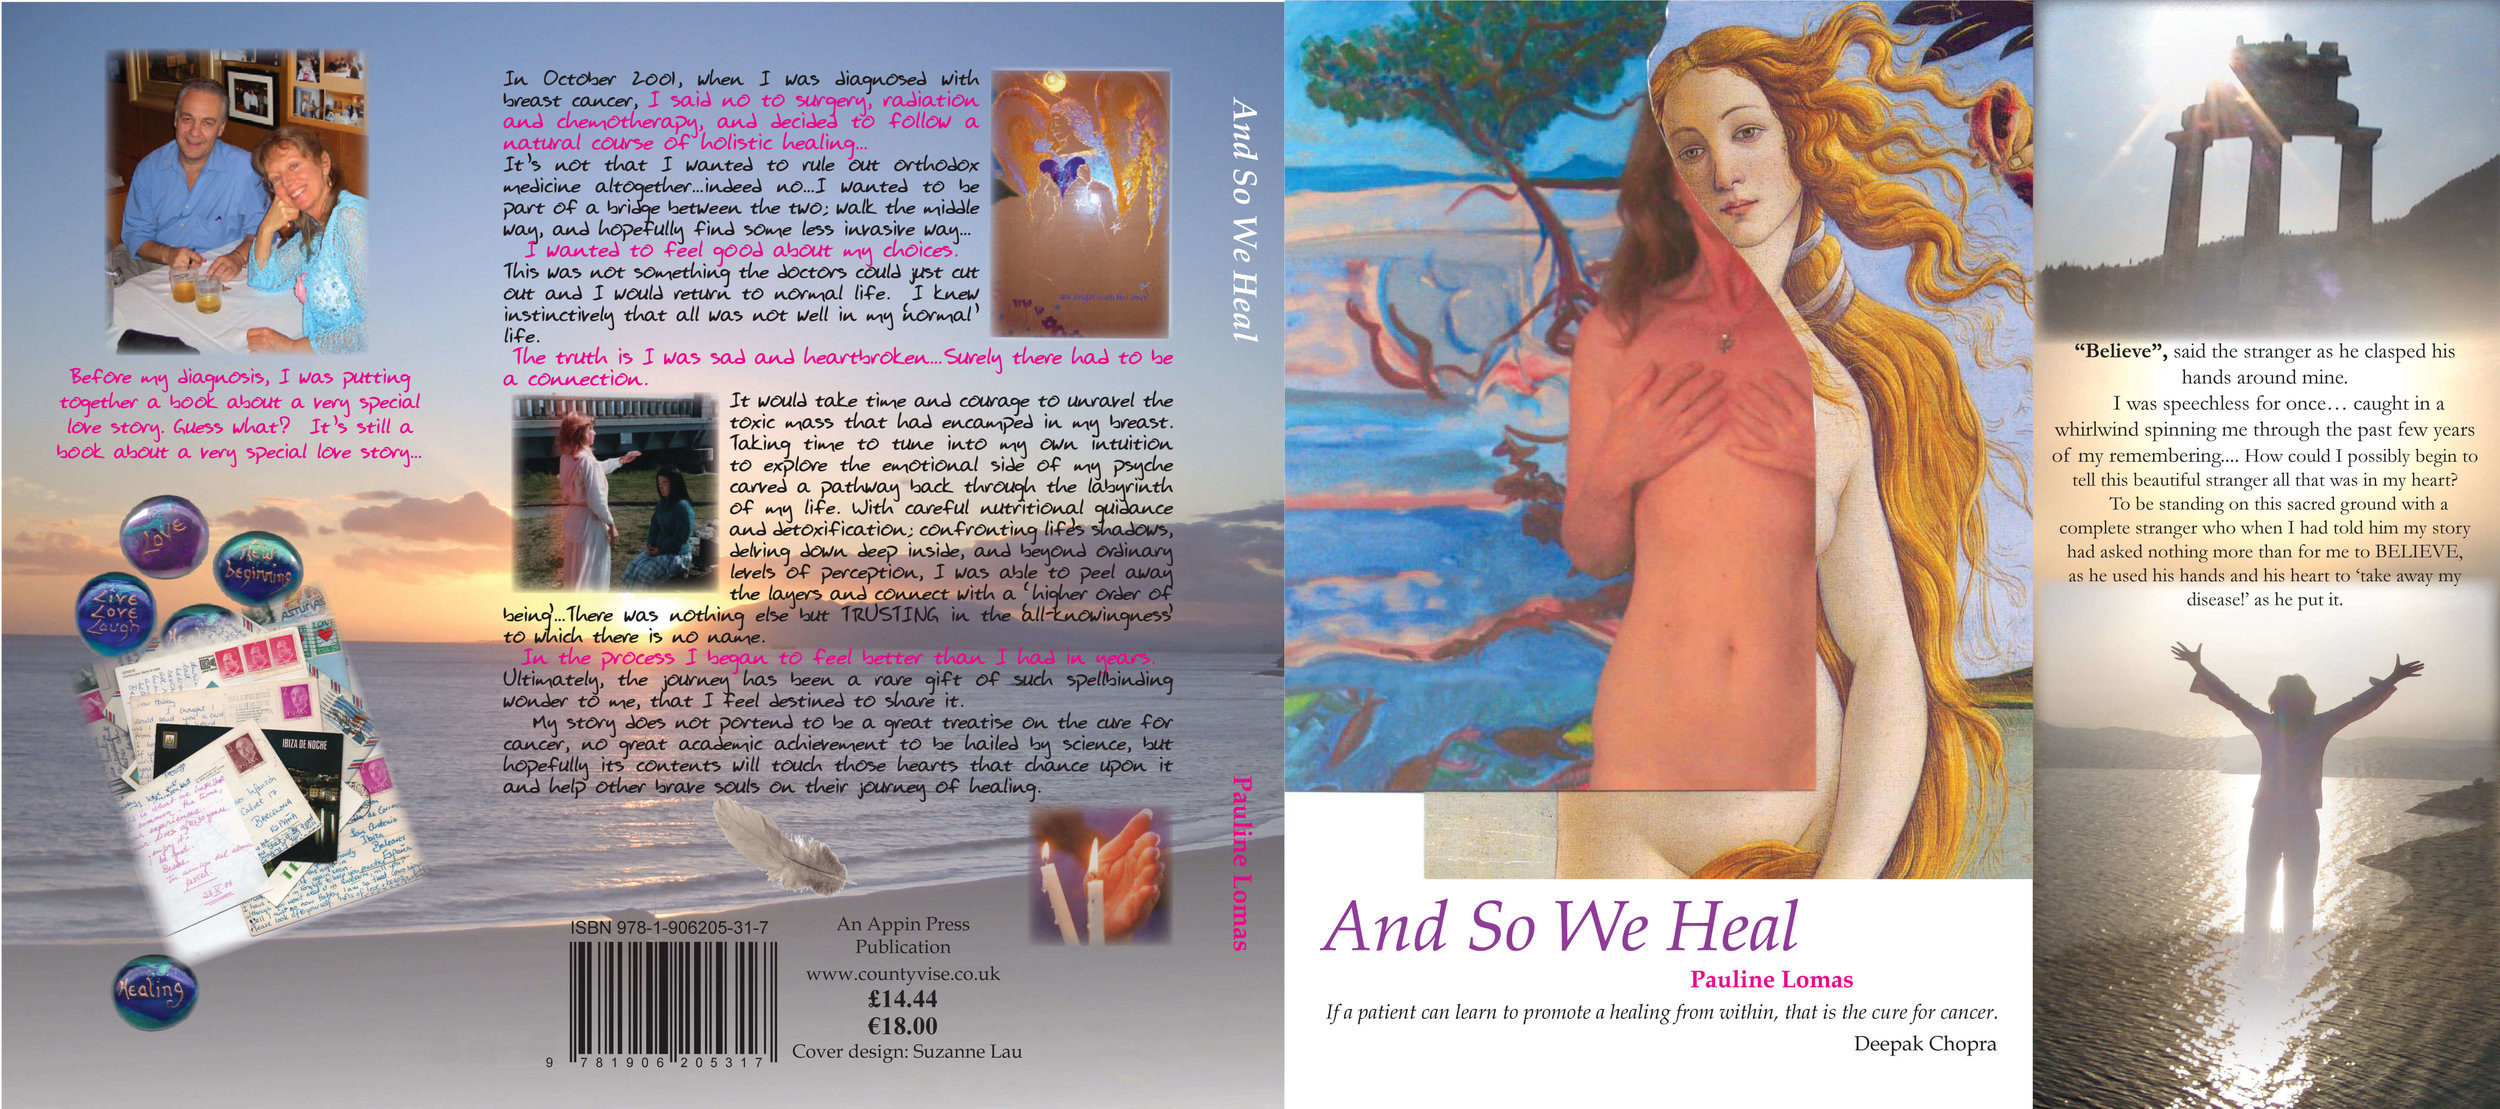 And so we heal Cover 2009.jpg